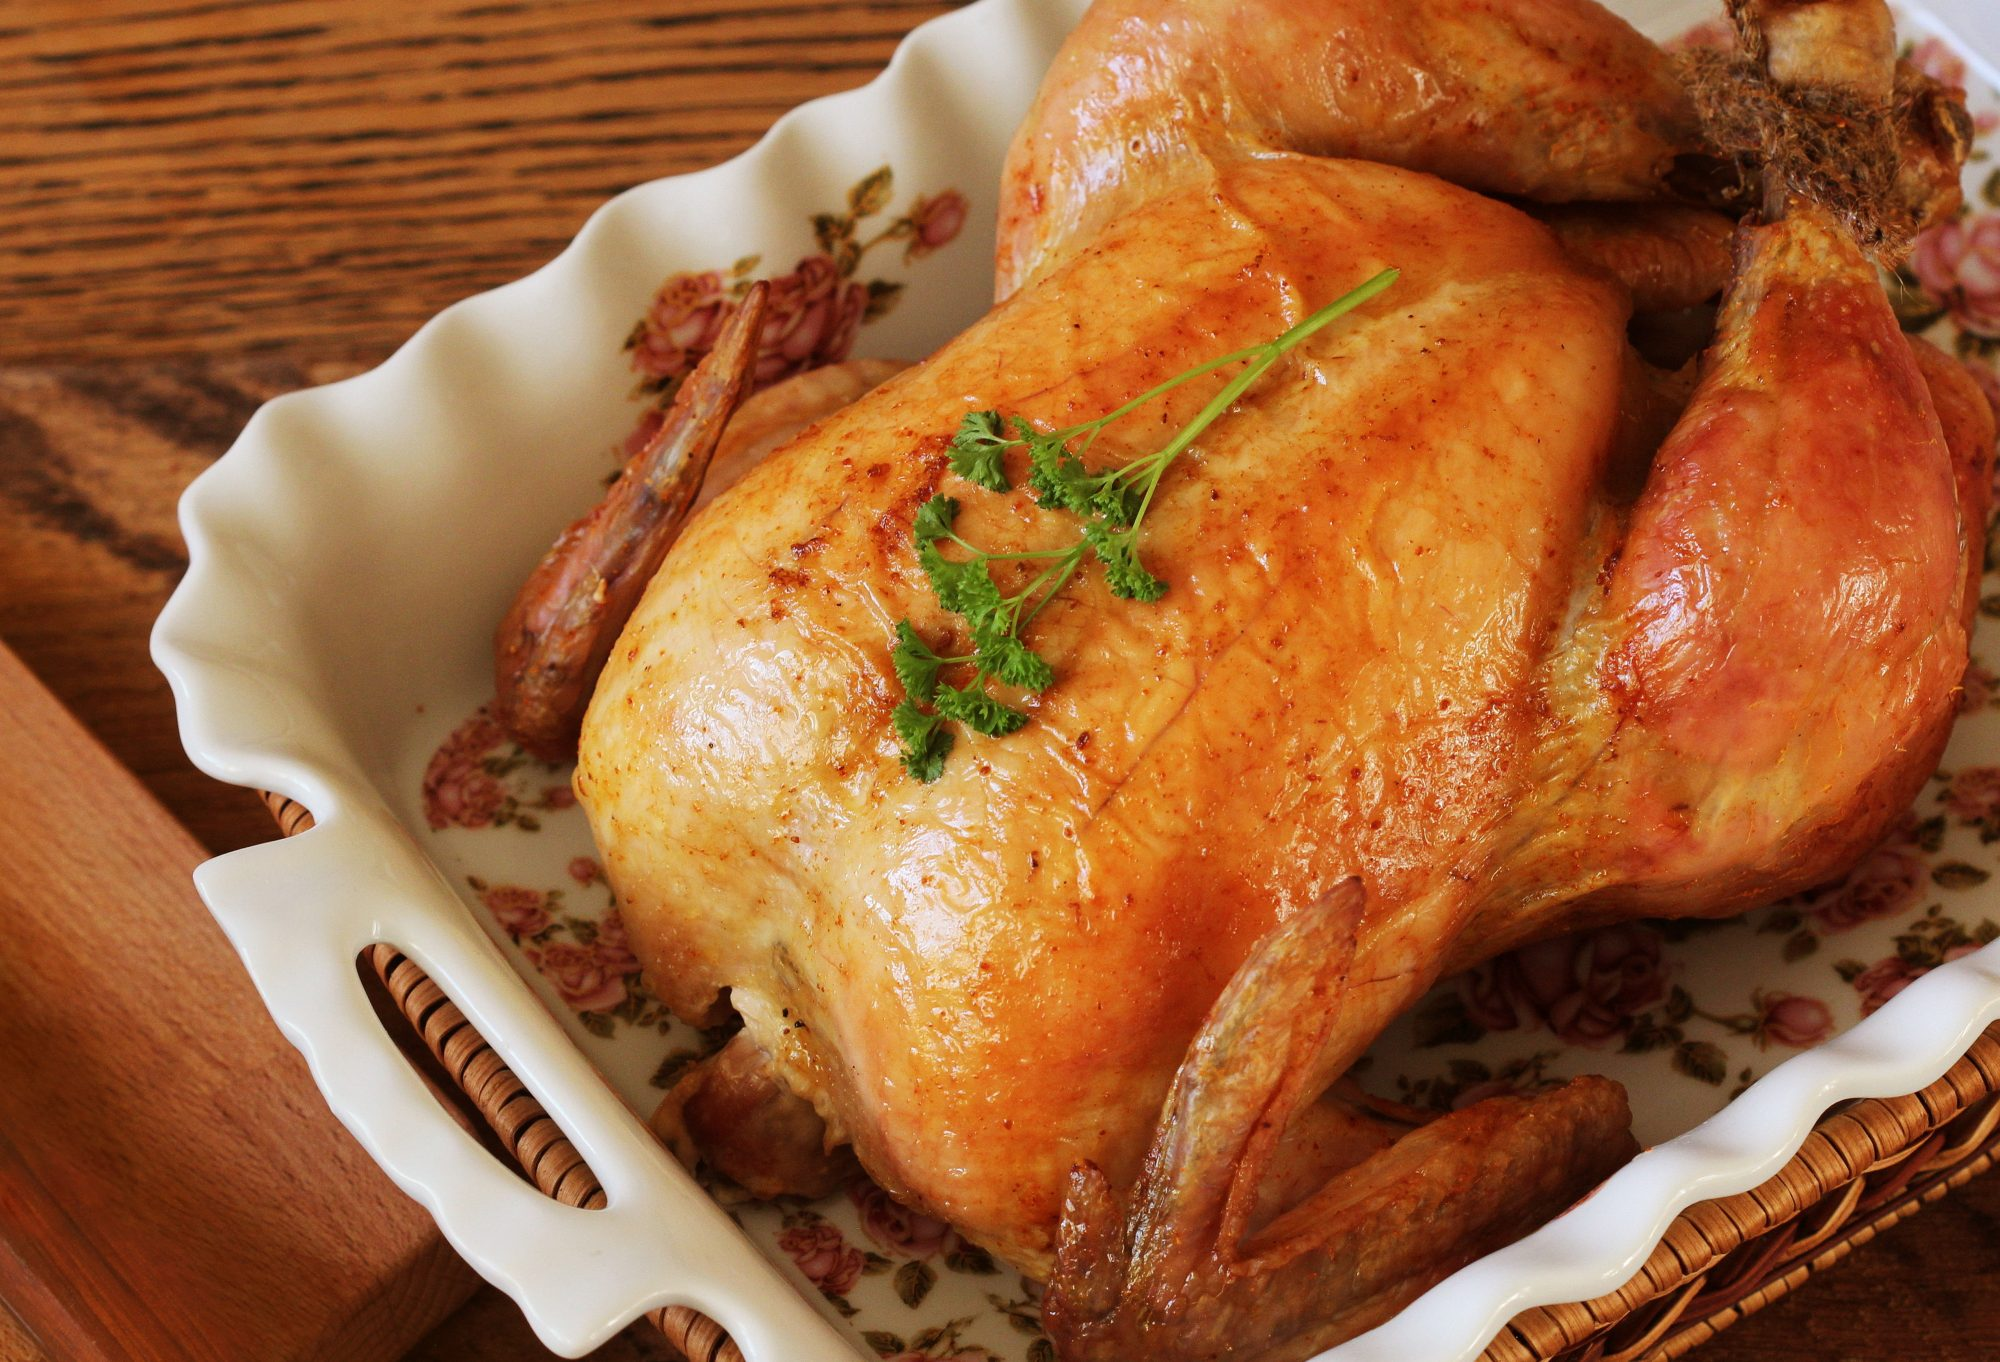 The 15 Most Common Mistakes People Make Cooking a Turkey